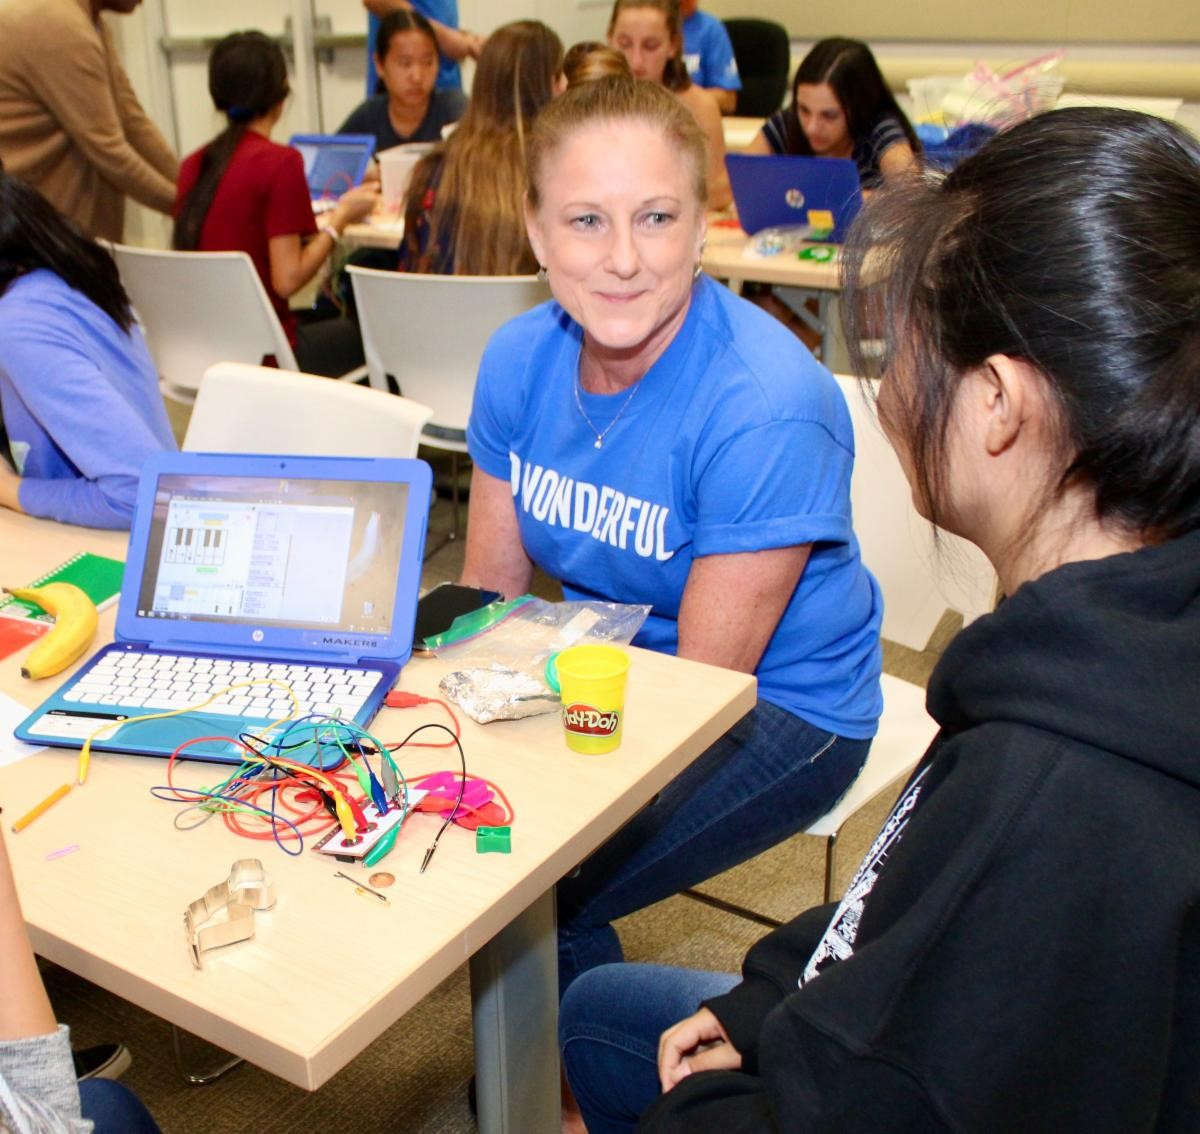 The Arizona Educational Foundation And Intel Are Providing 40 Teachers Throughout The State With A $2,500 Grant To Fund STEAM Projects. Photo Courtesy Arizona Educational Foundation And Intel